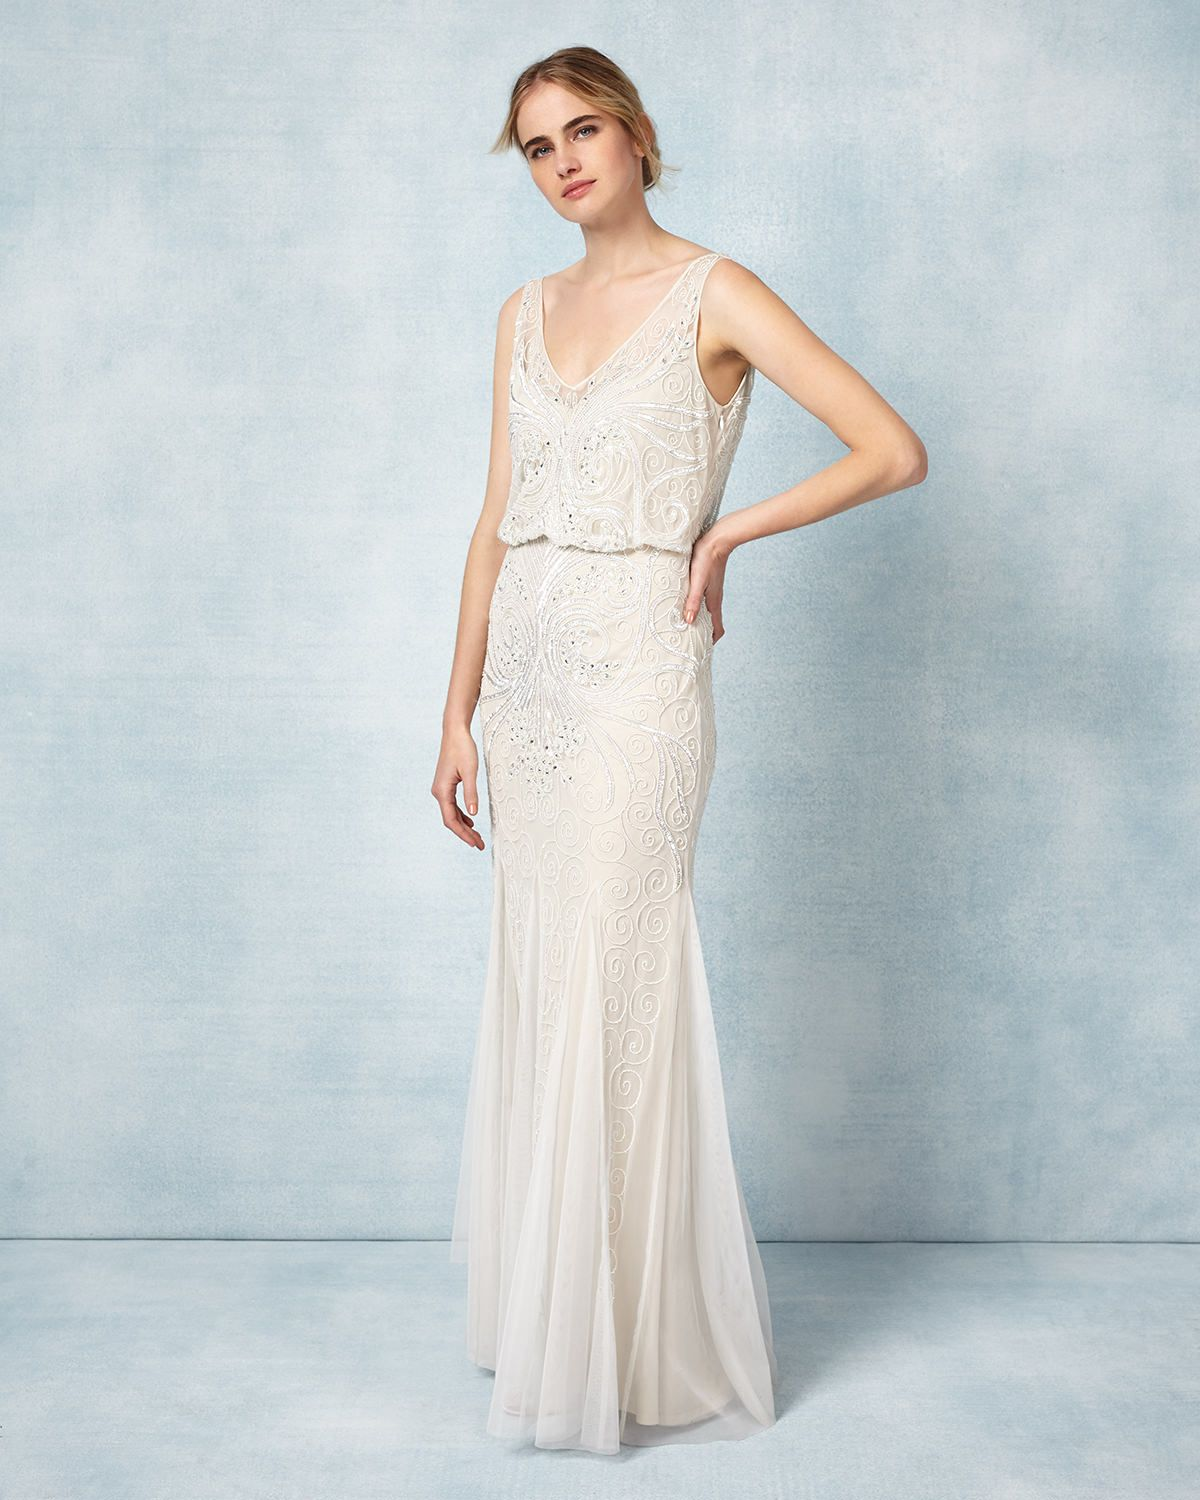 1930s style wedding dresses shoes accessories 1930s style 1930s style wedding dresses phase eight cathlyn bridal dress 49500 at vintagedancer ombrellifo Images